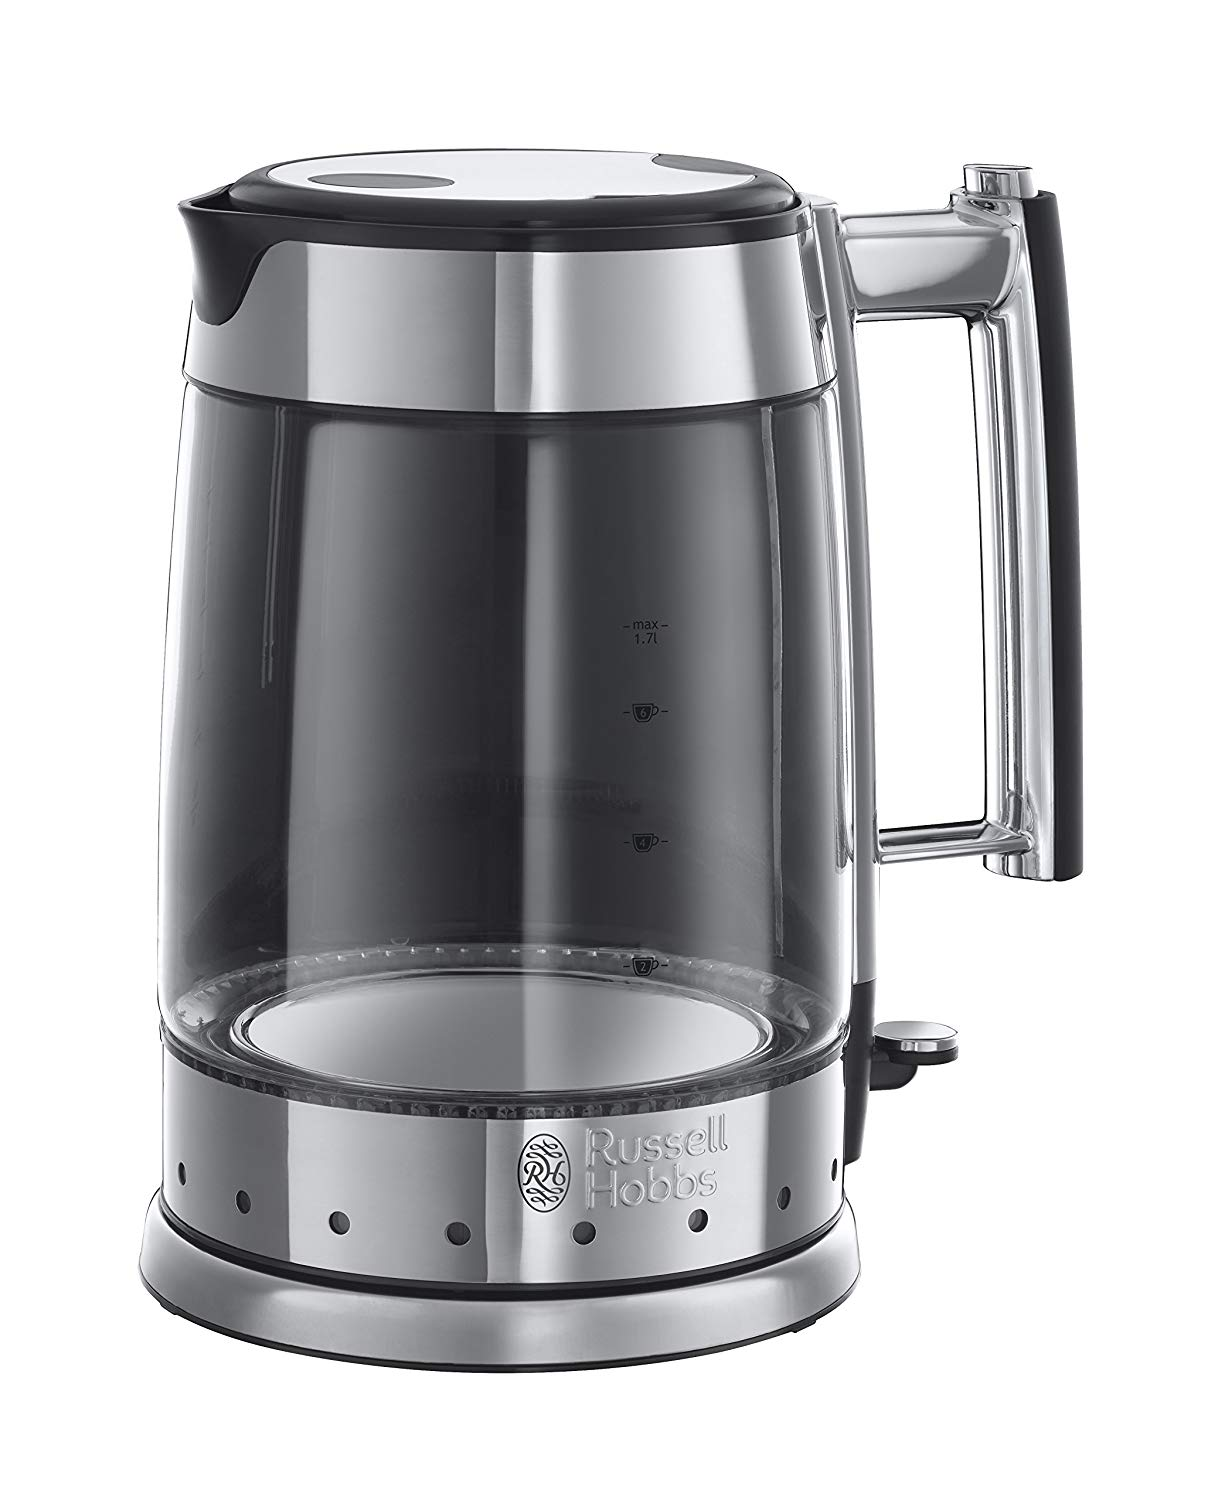 Brand New Russell Hobbs 20780 1.7L Glass Line Kettle 3kW